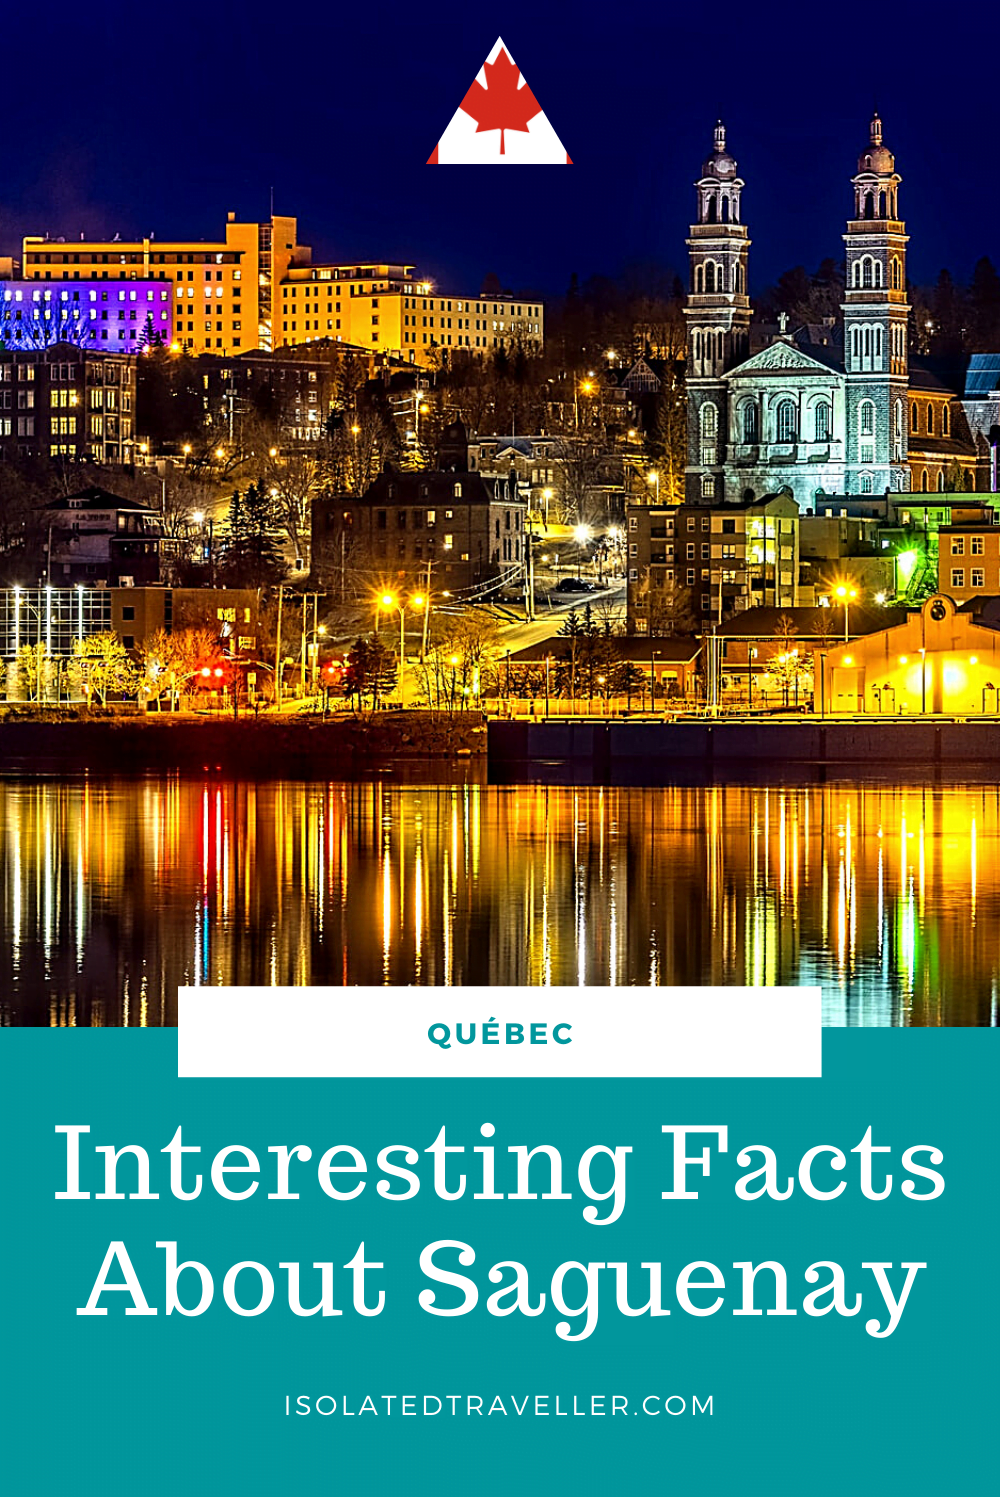 Facts About Saguenay